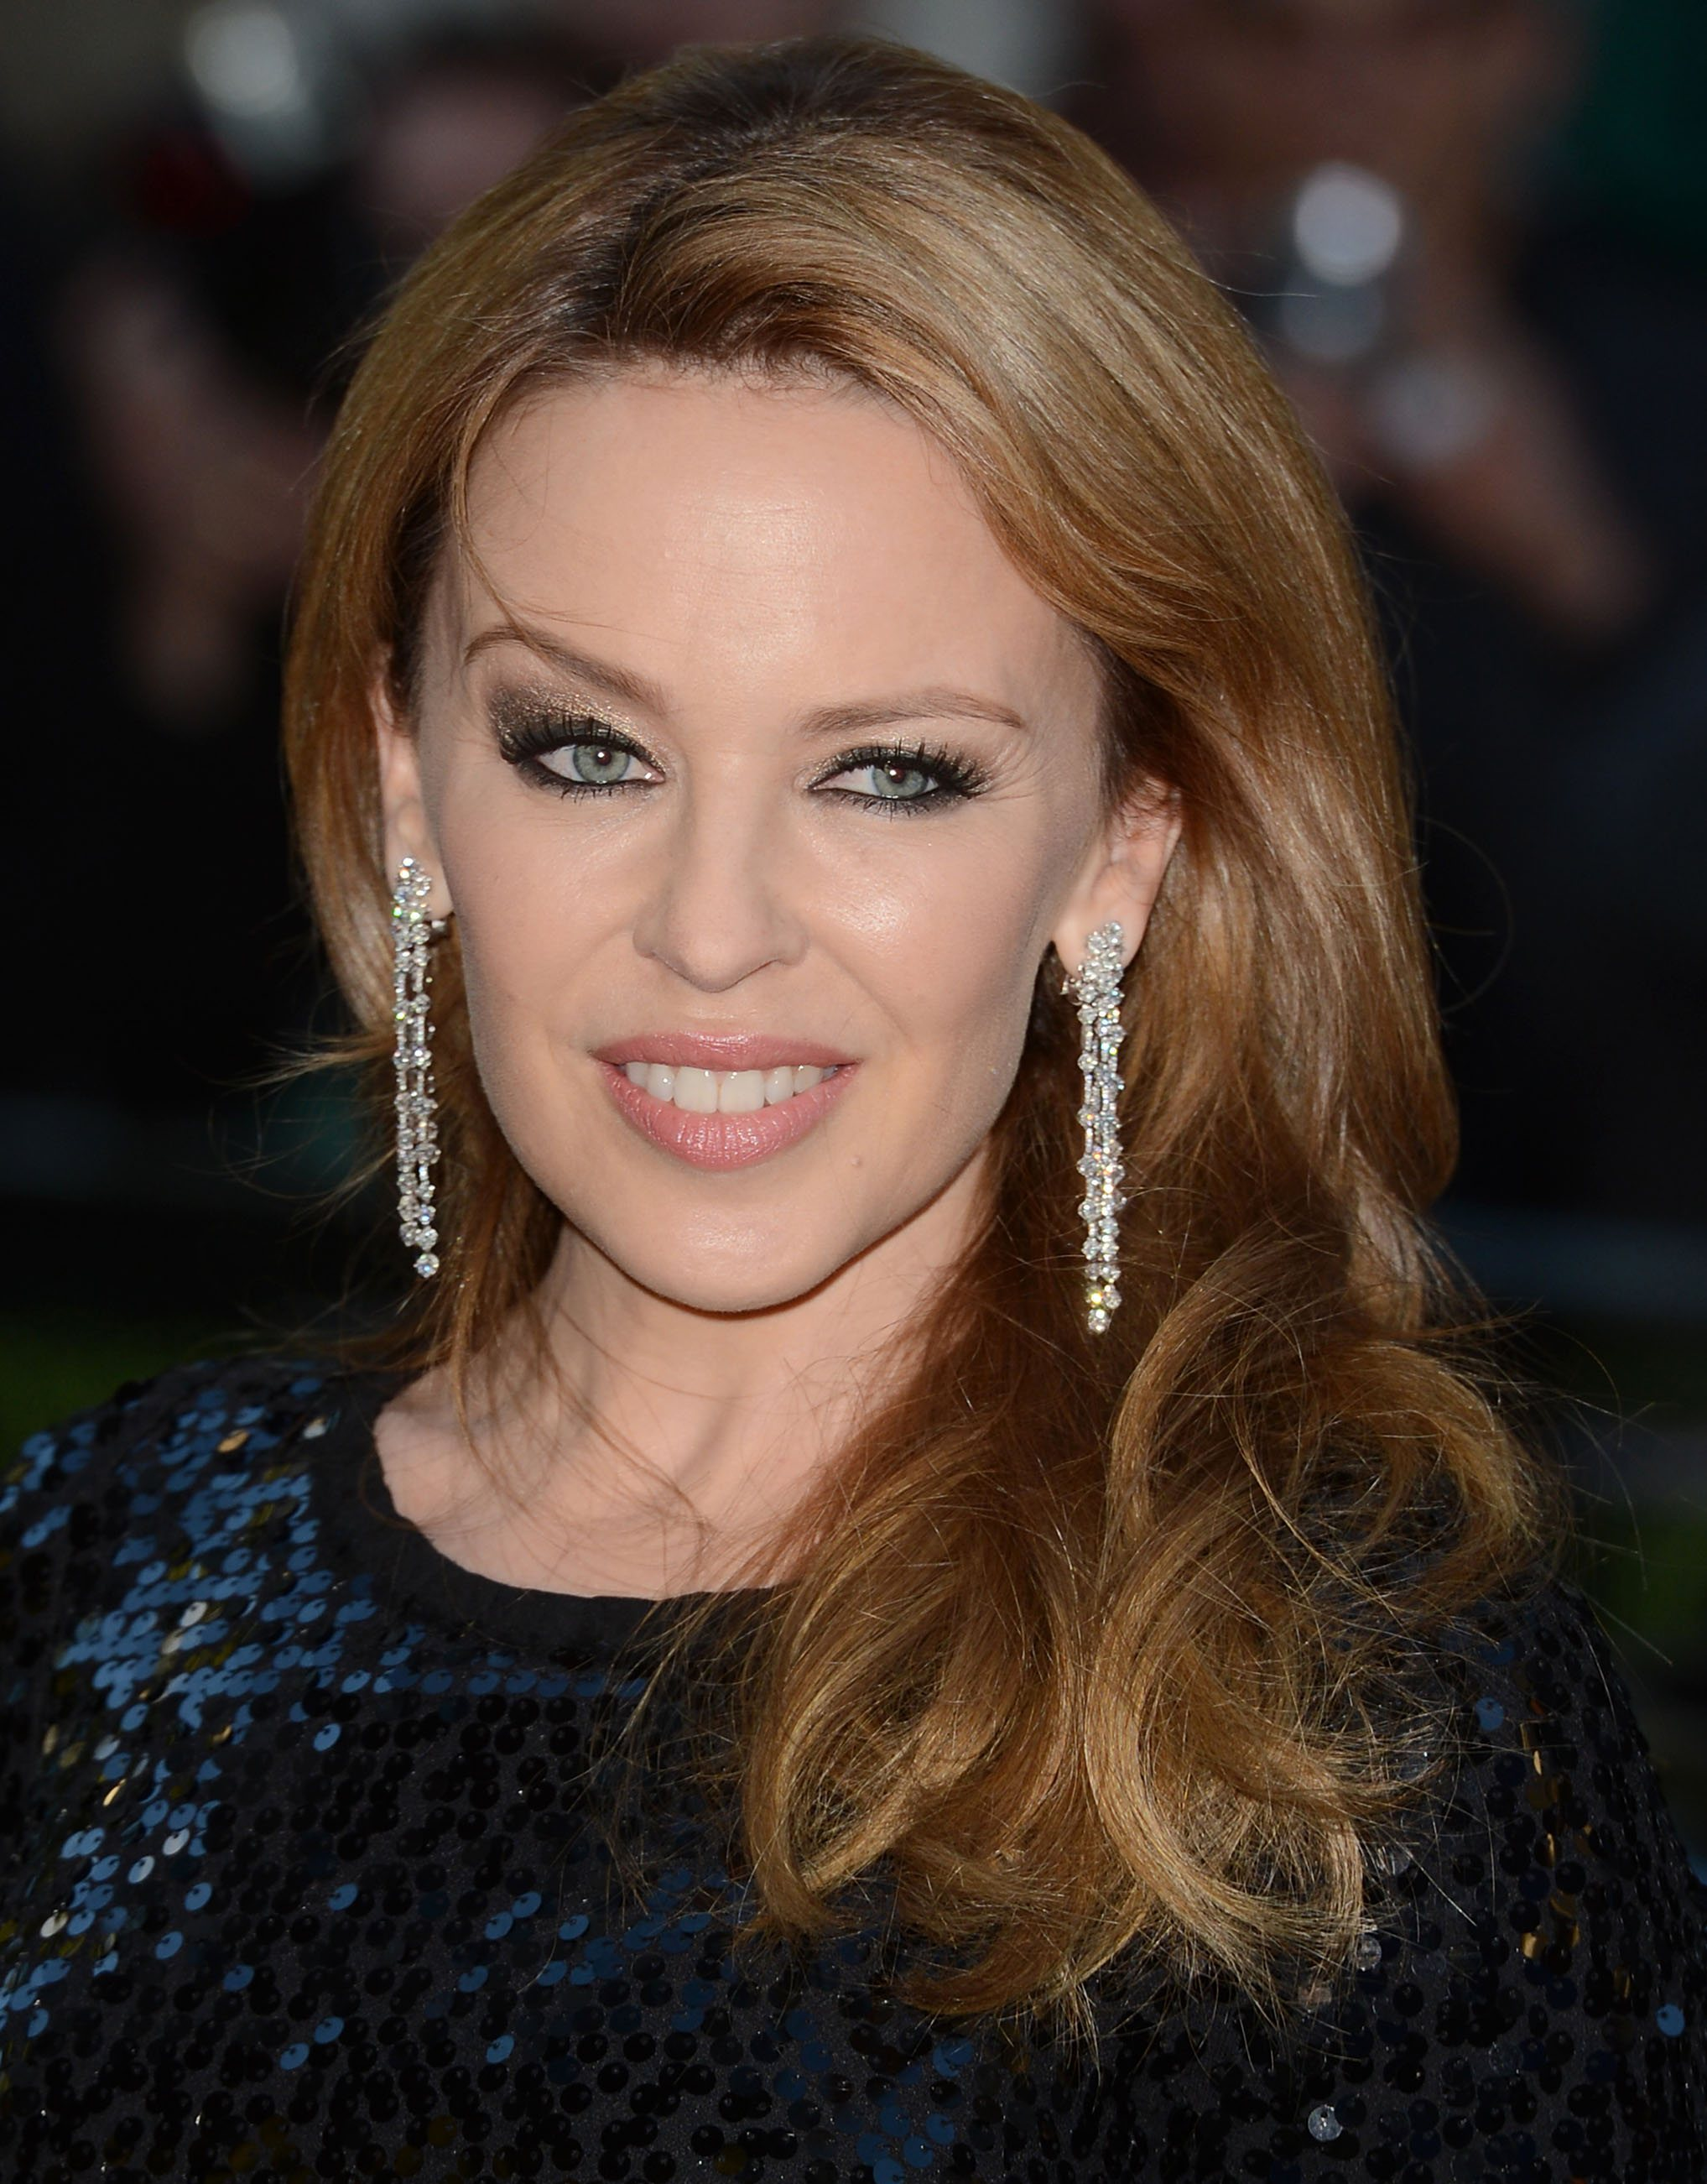 Kylie Minogue has a thing for wrinkly rock stars